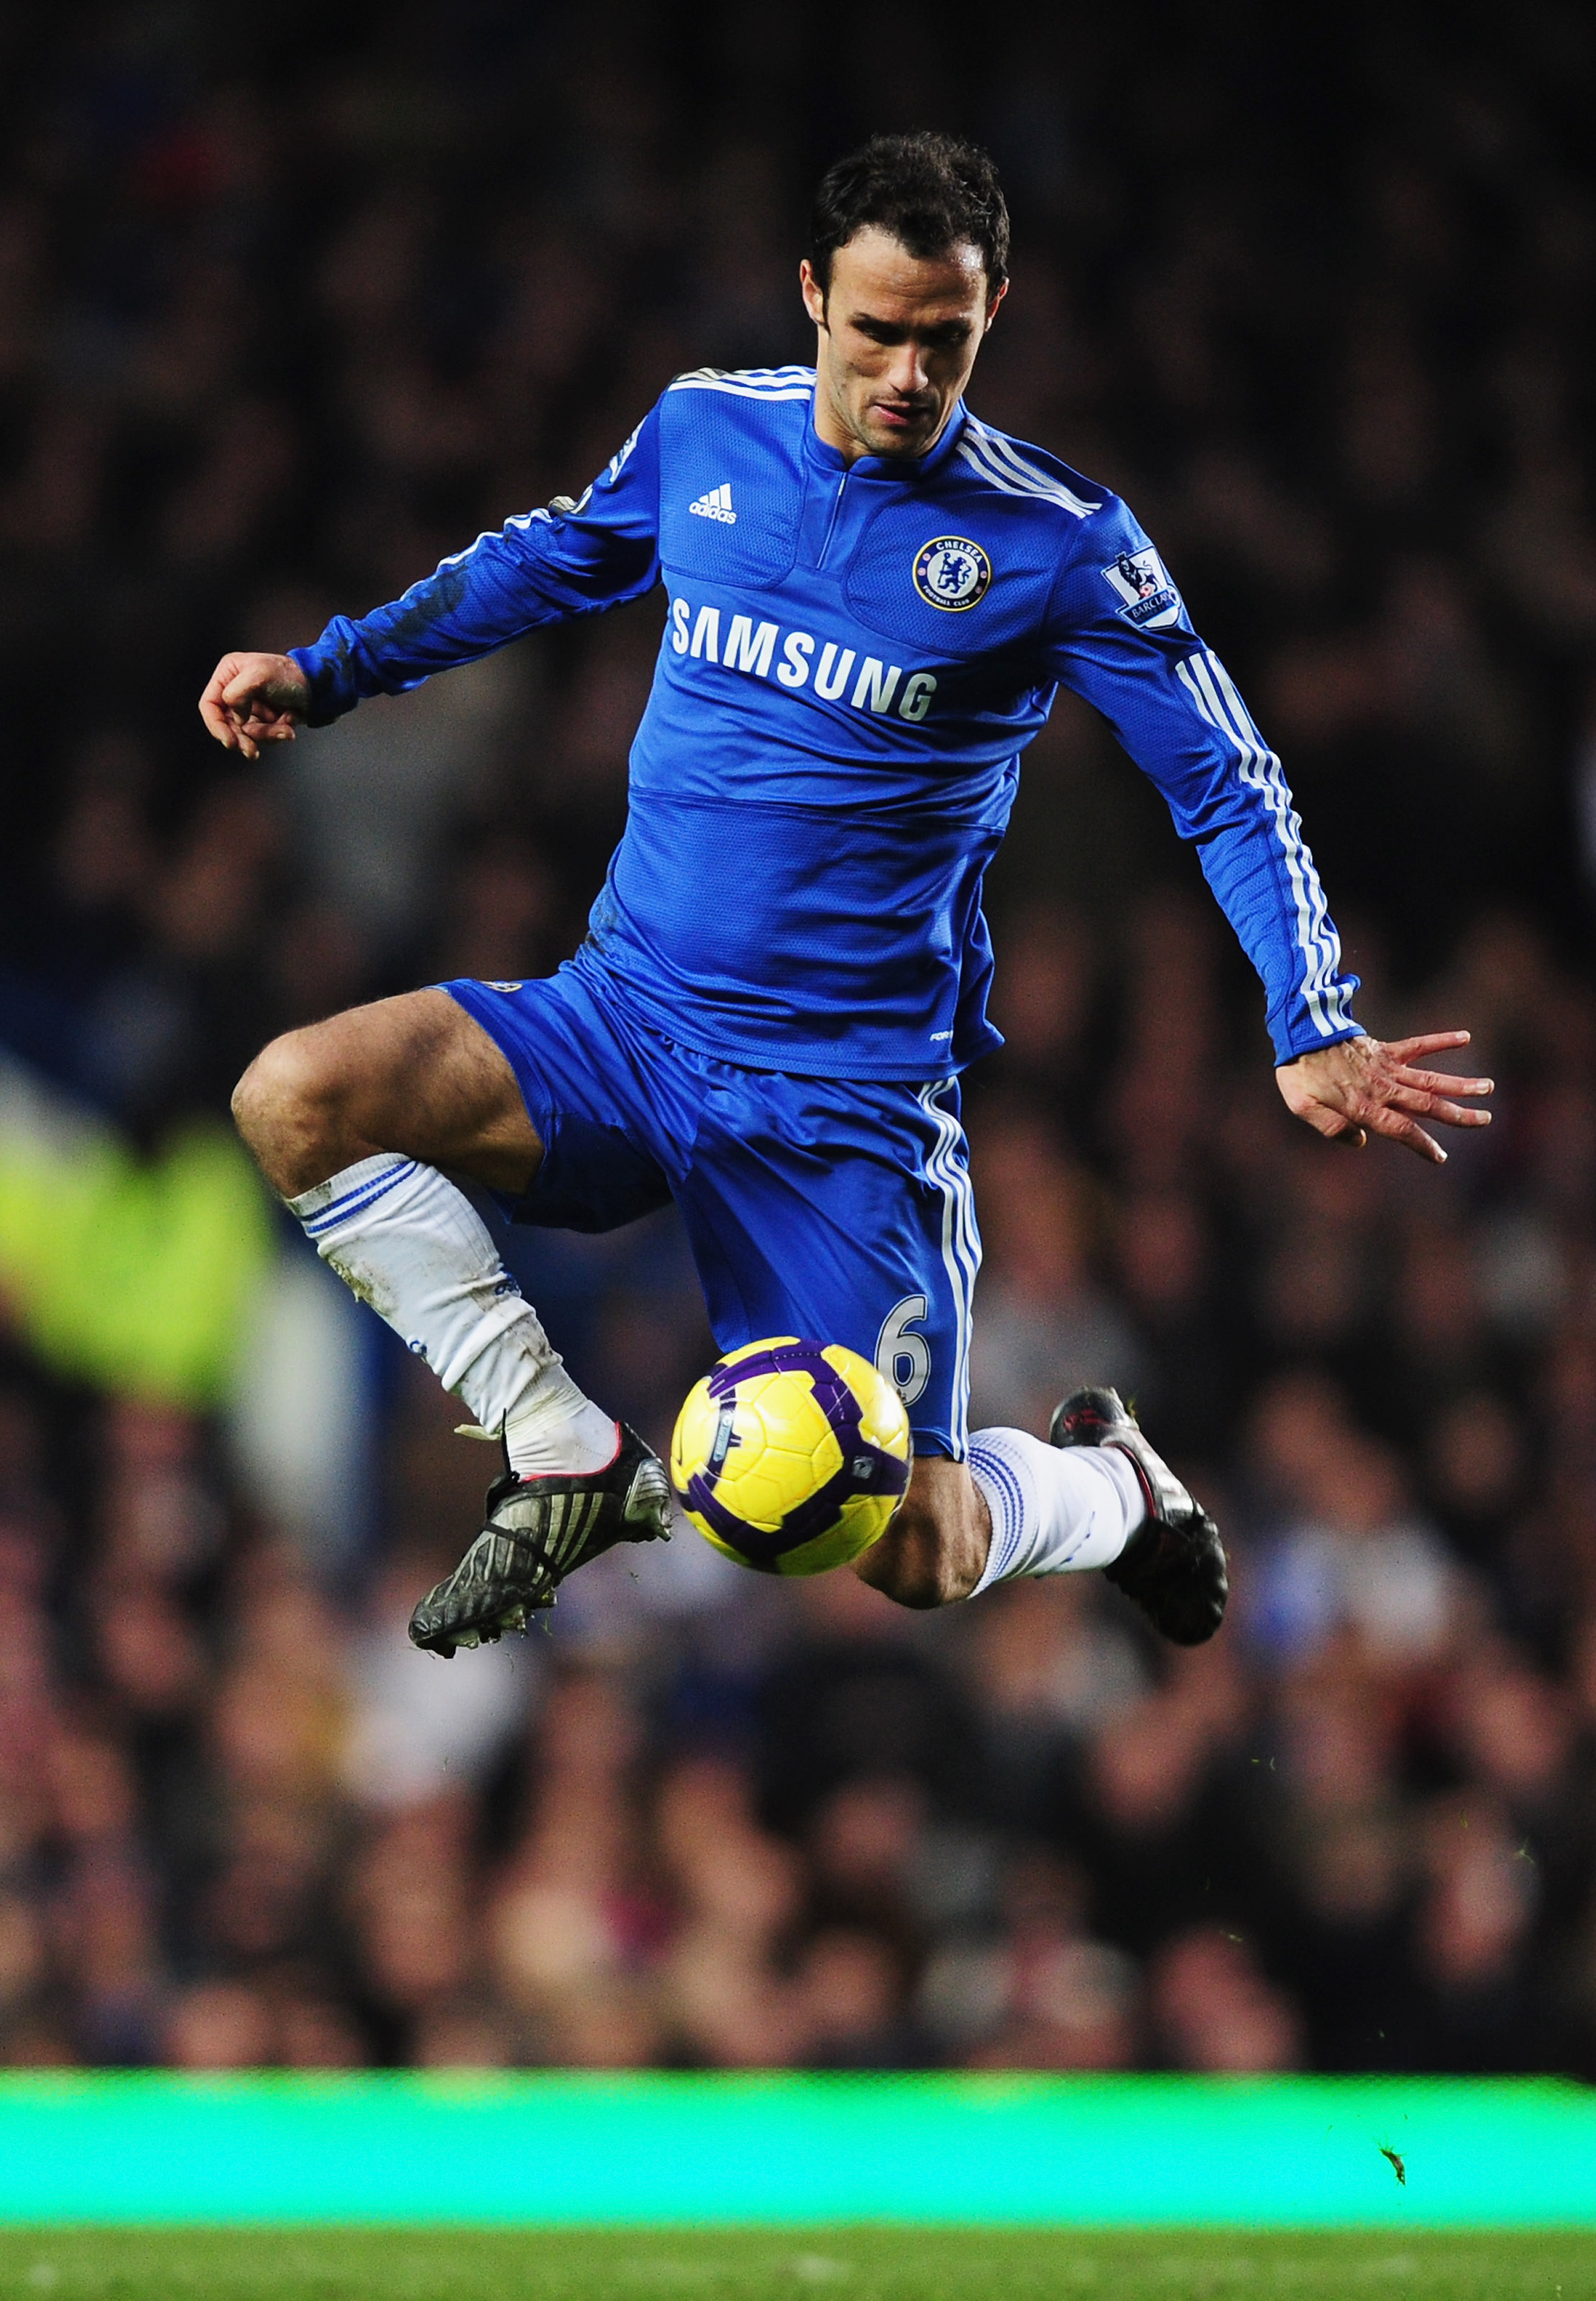 Ricardo Carvalho, solid and underrated